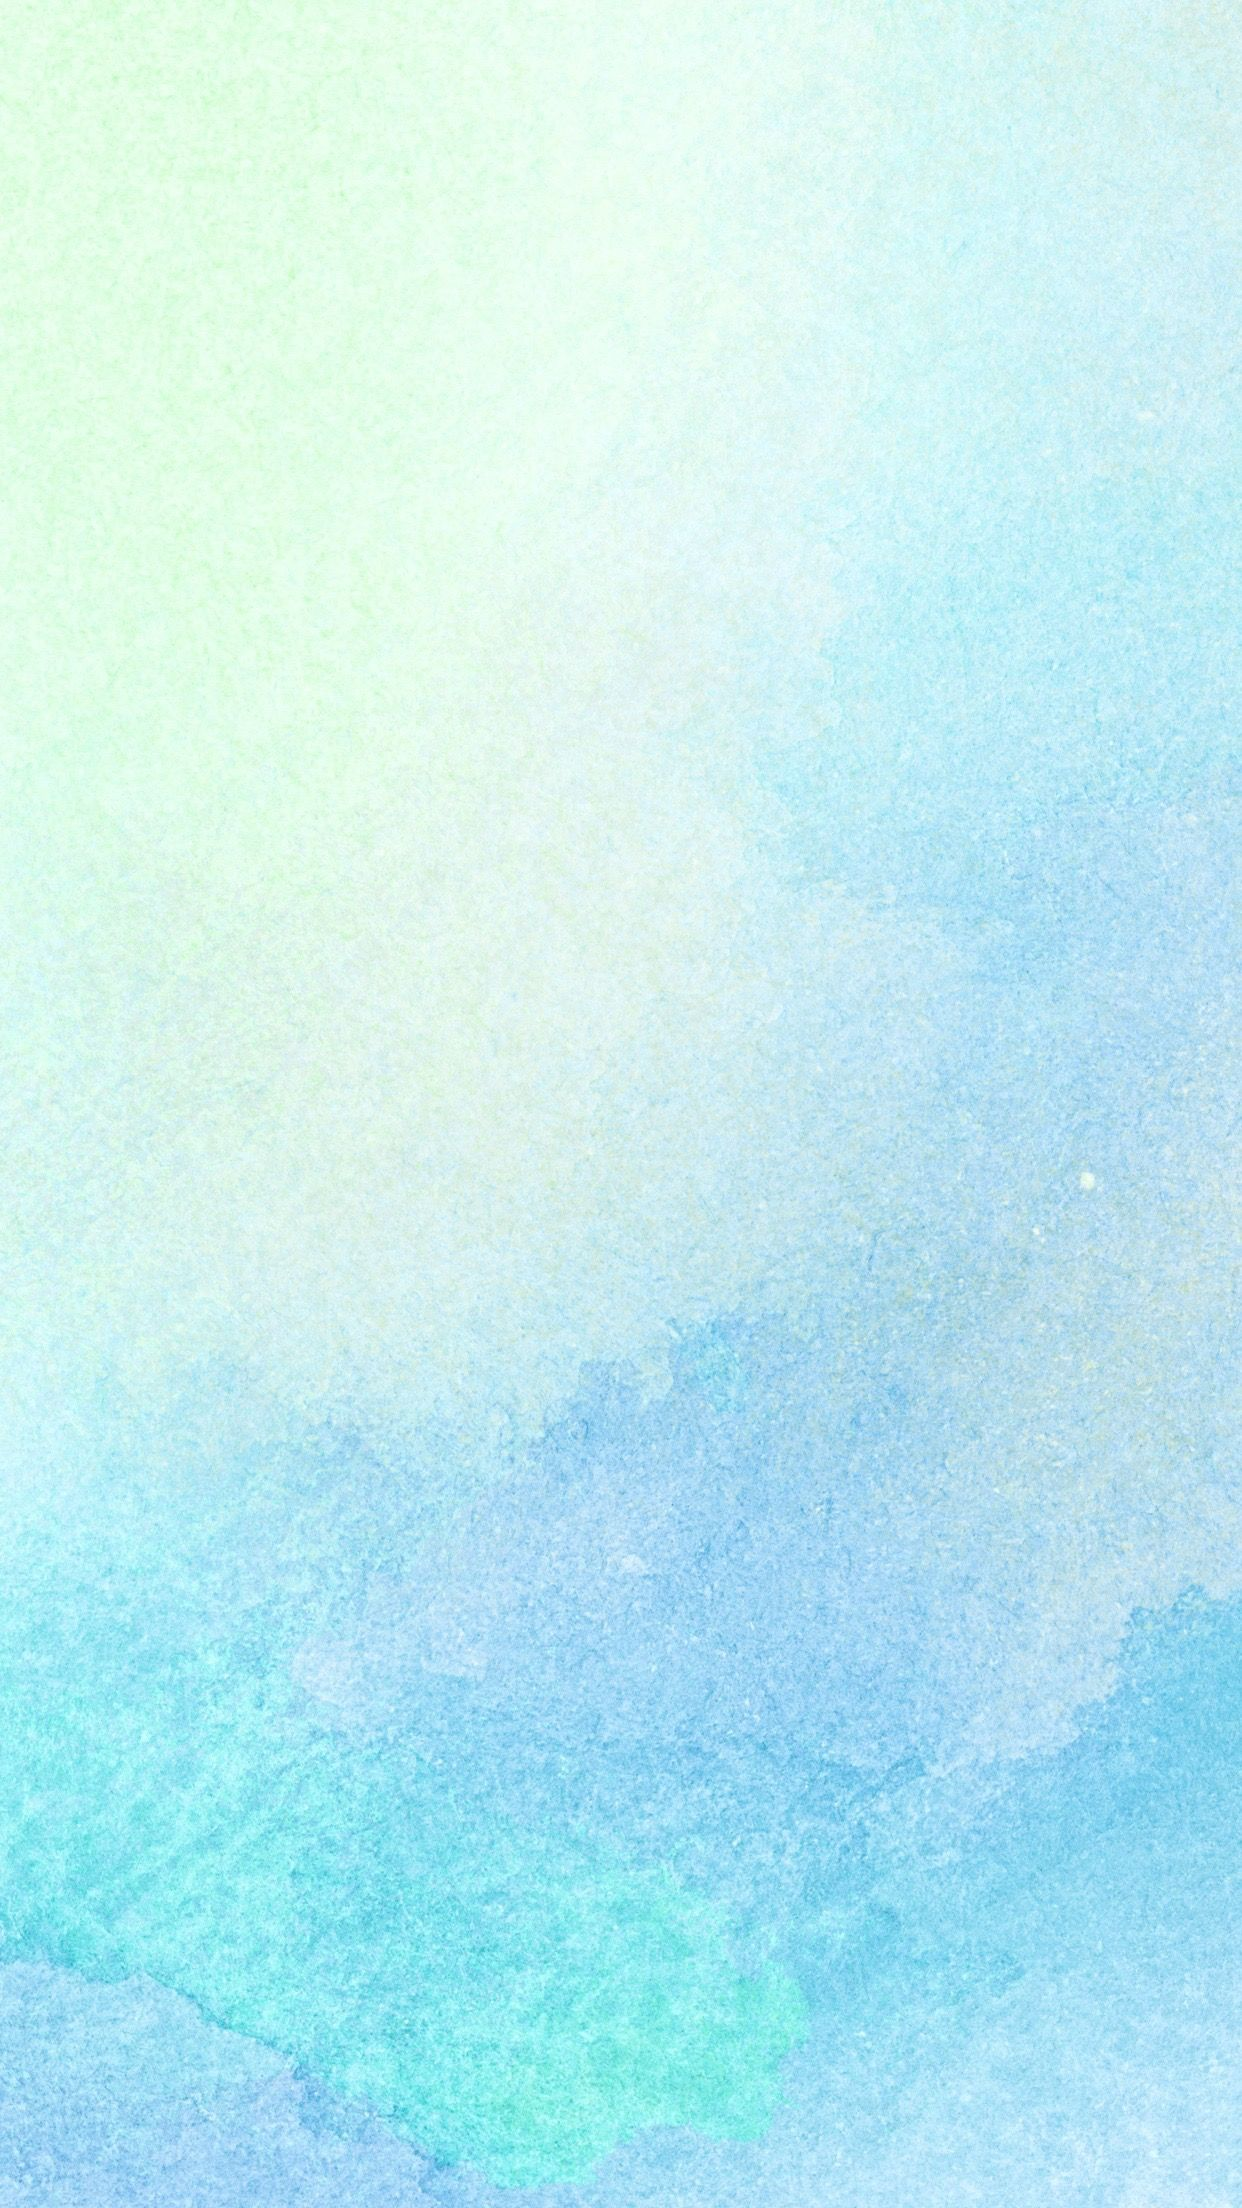 Pin By Rylee Clifton On Iphone Pastel Background Wallpapers Watercolor Wallpaper Phone Pastel Background